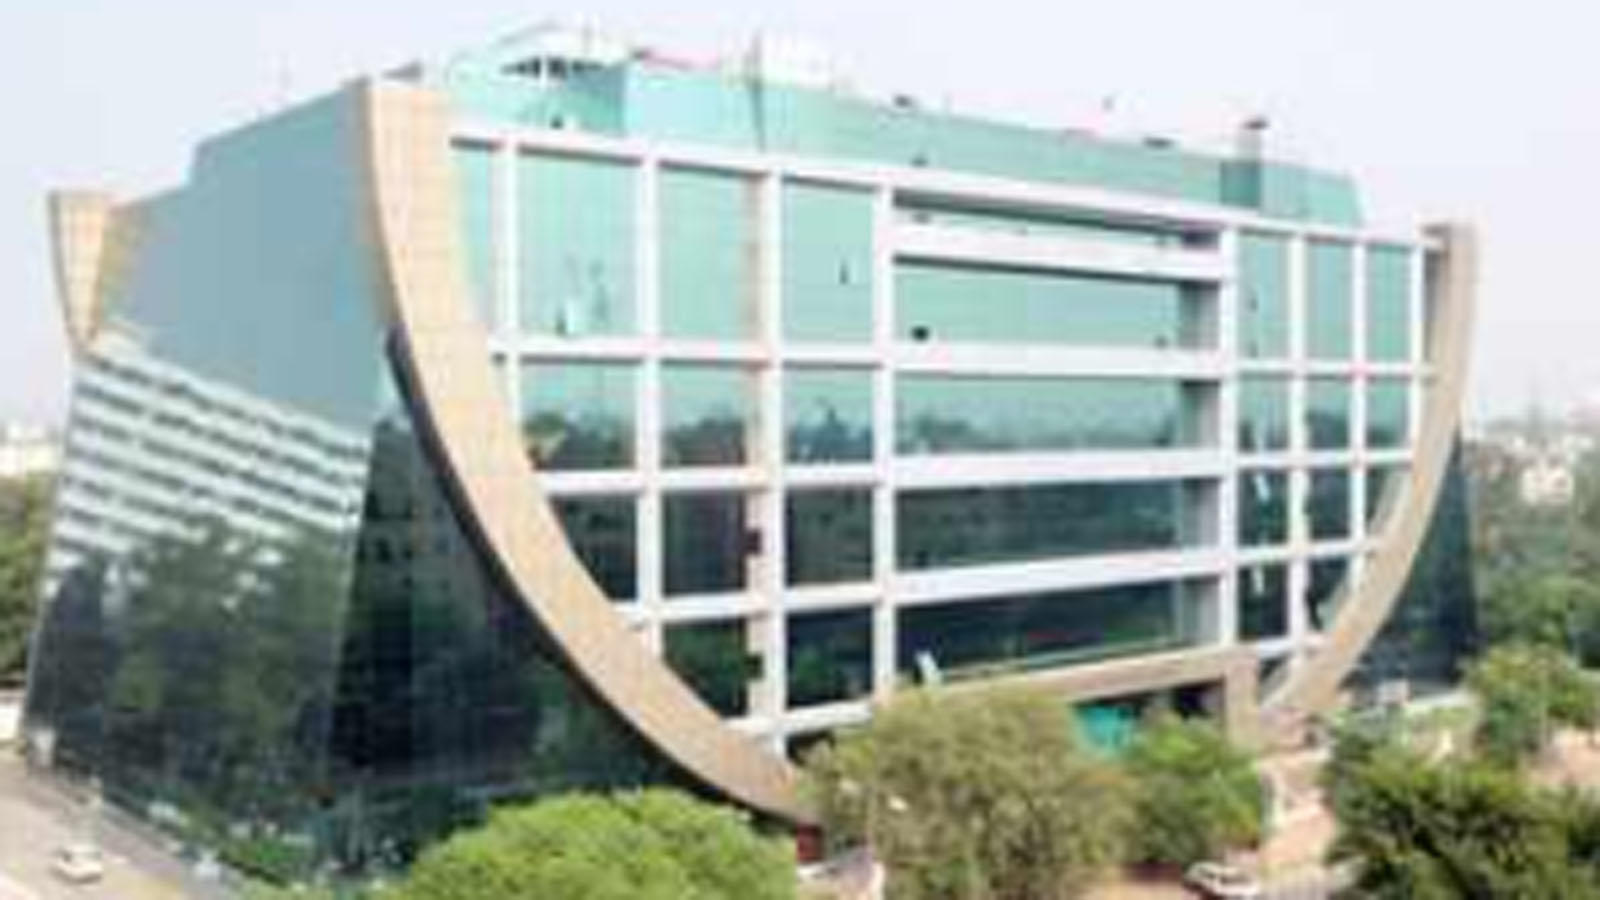 cbi-conducts-searches-against-dairy-products-firm-over-rs-1400-crore-bank-fraud